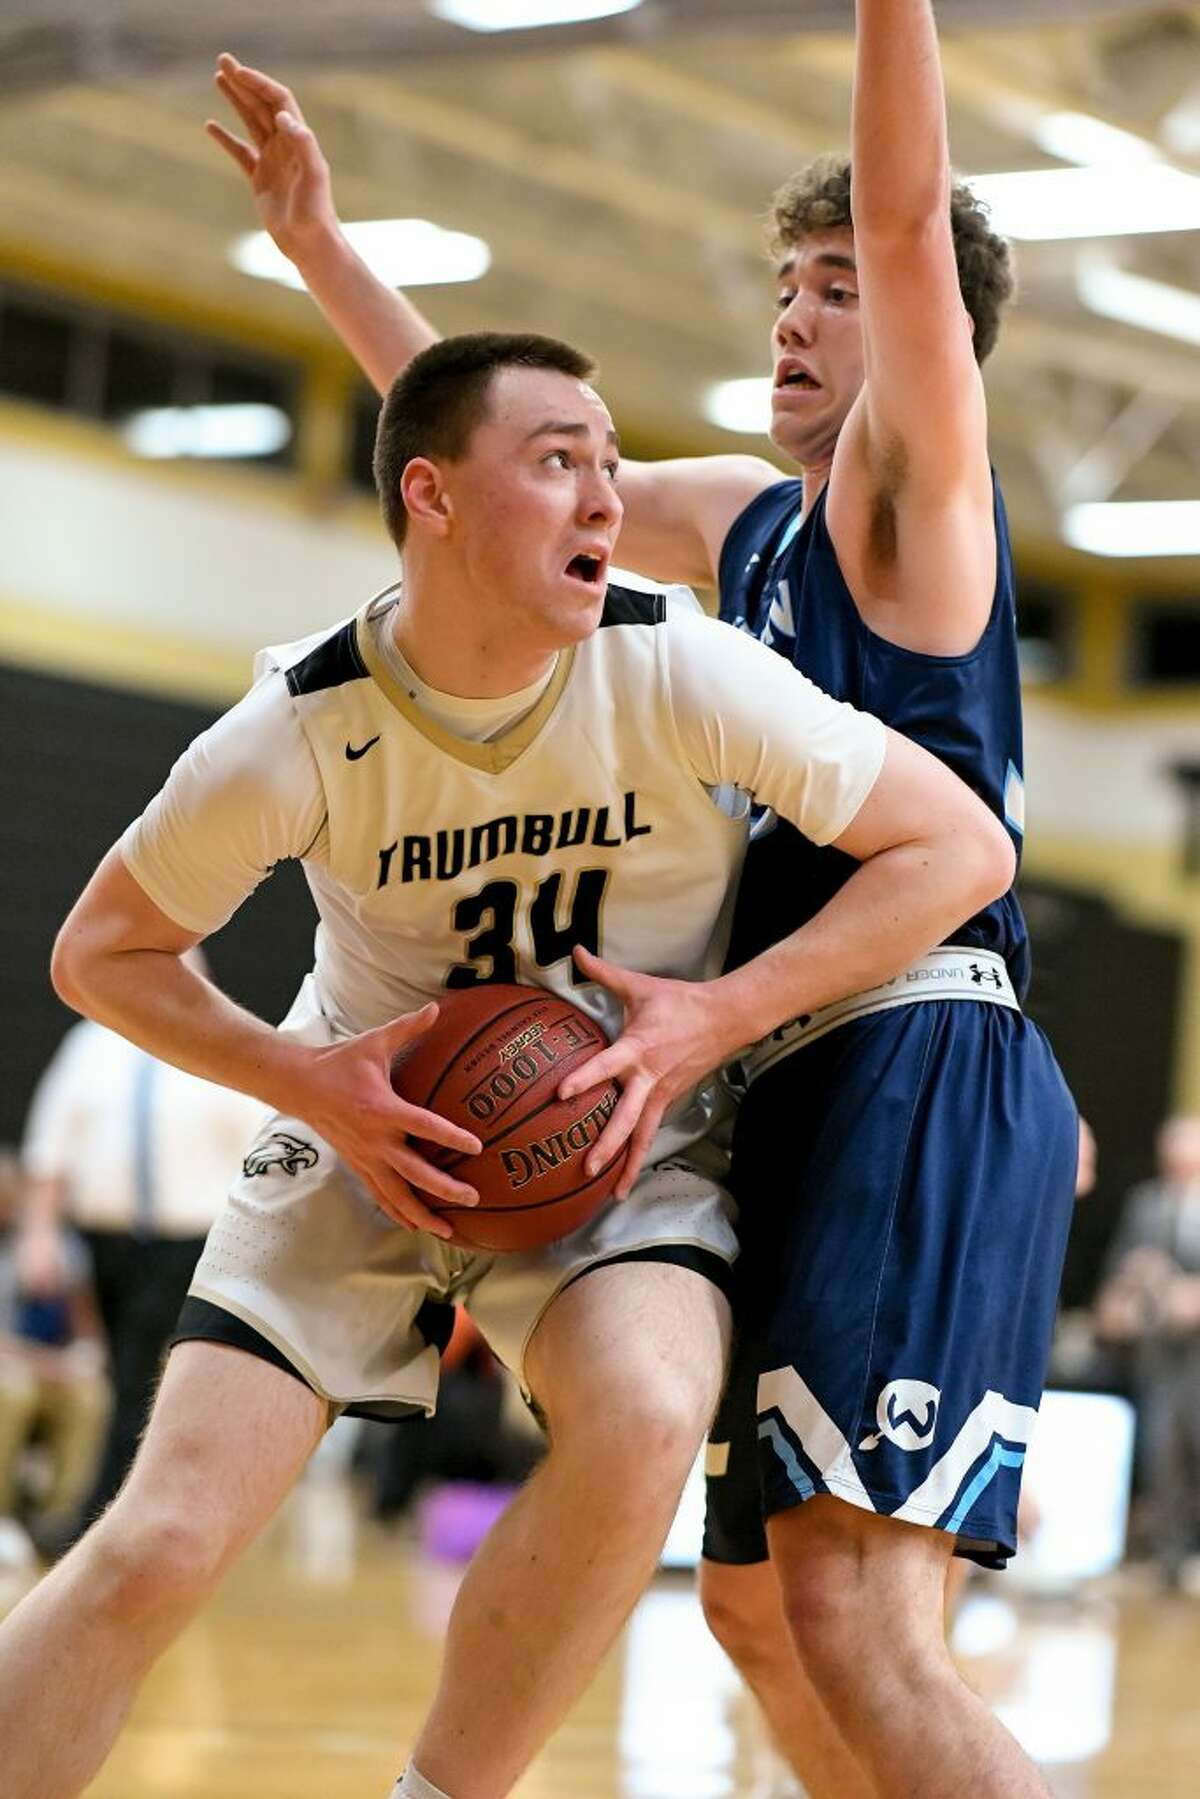 Trumbull's Evan Gutowski gets position on the block.Photo: David G. Whitham / For Hearst Connecticut Media